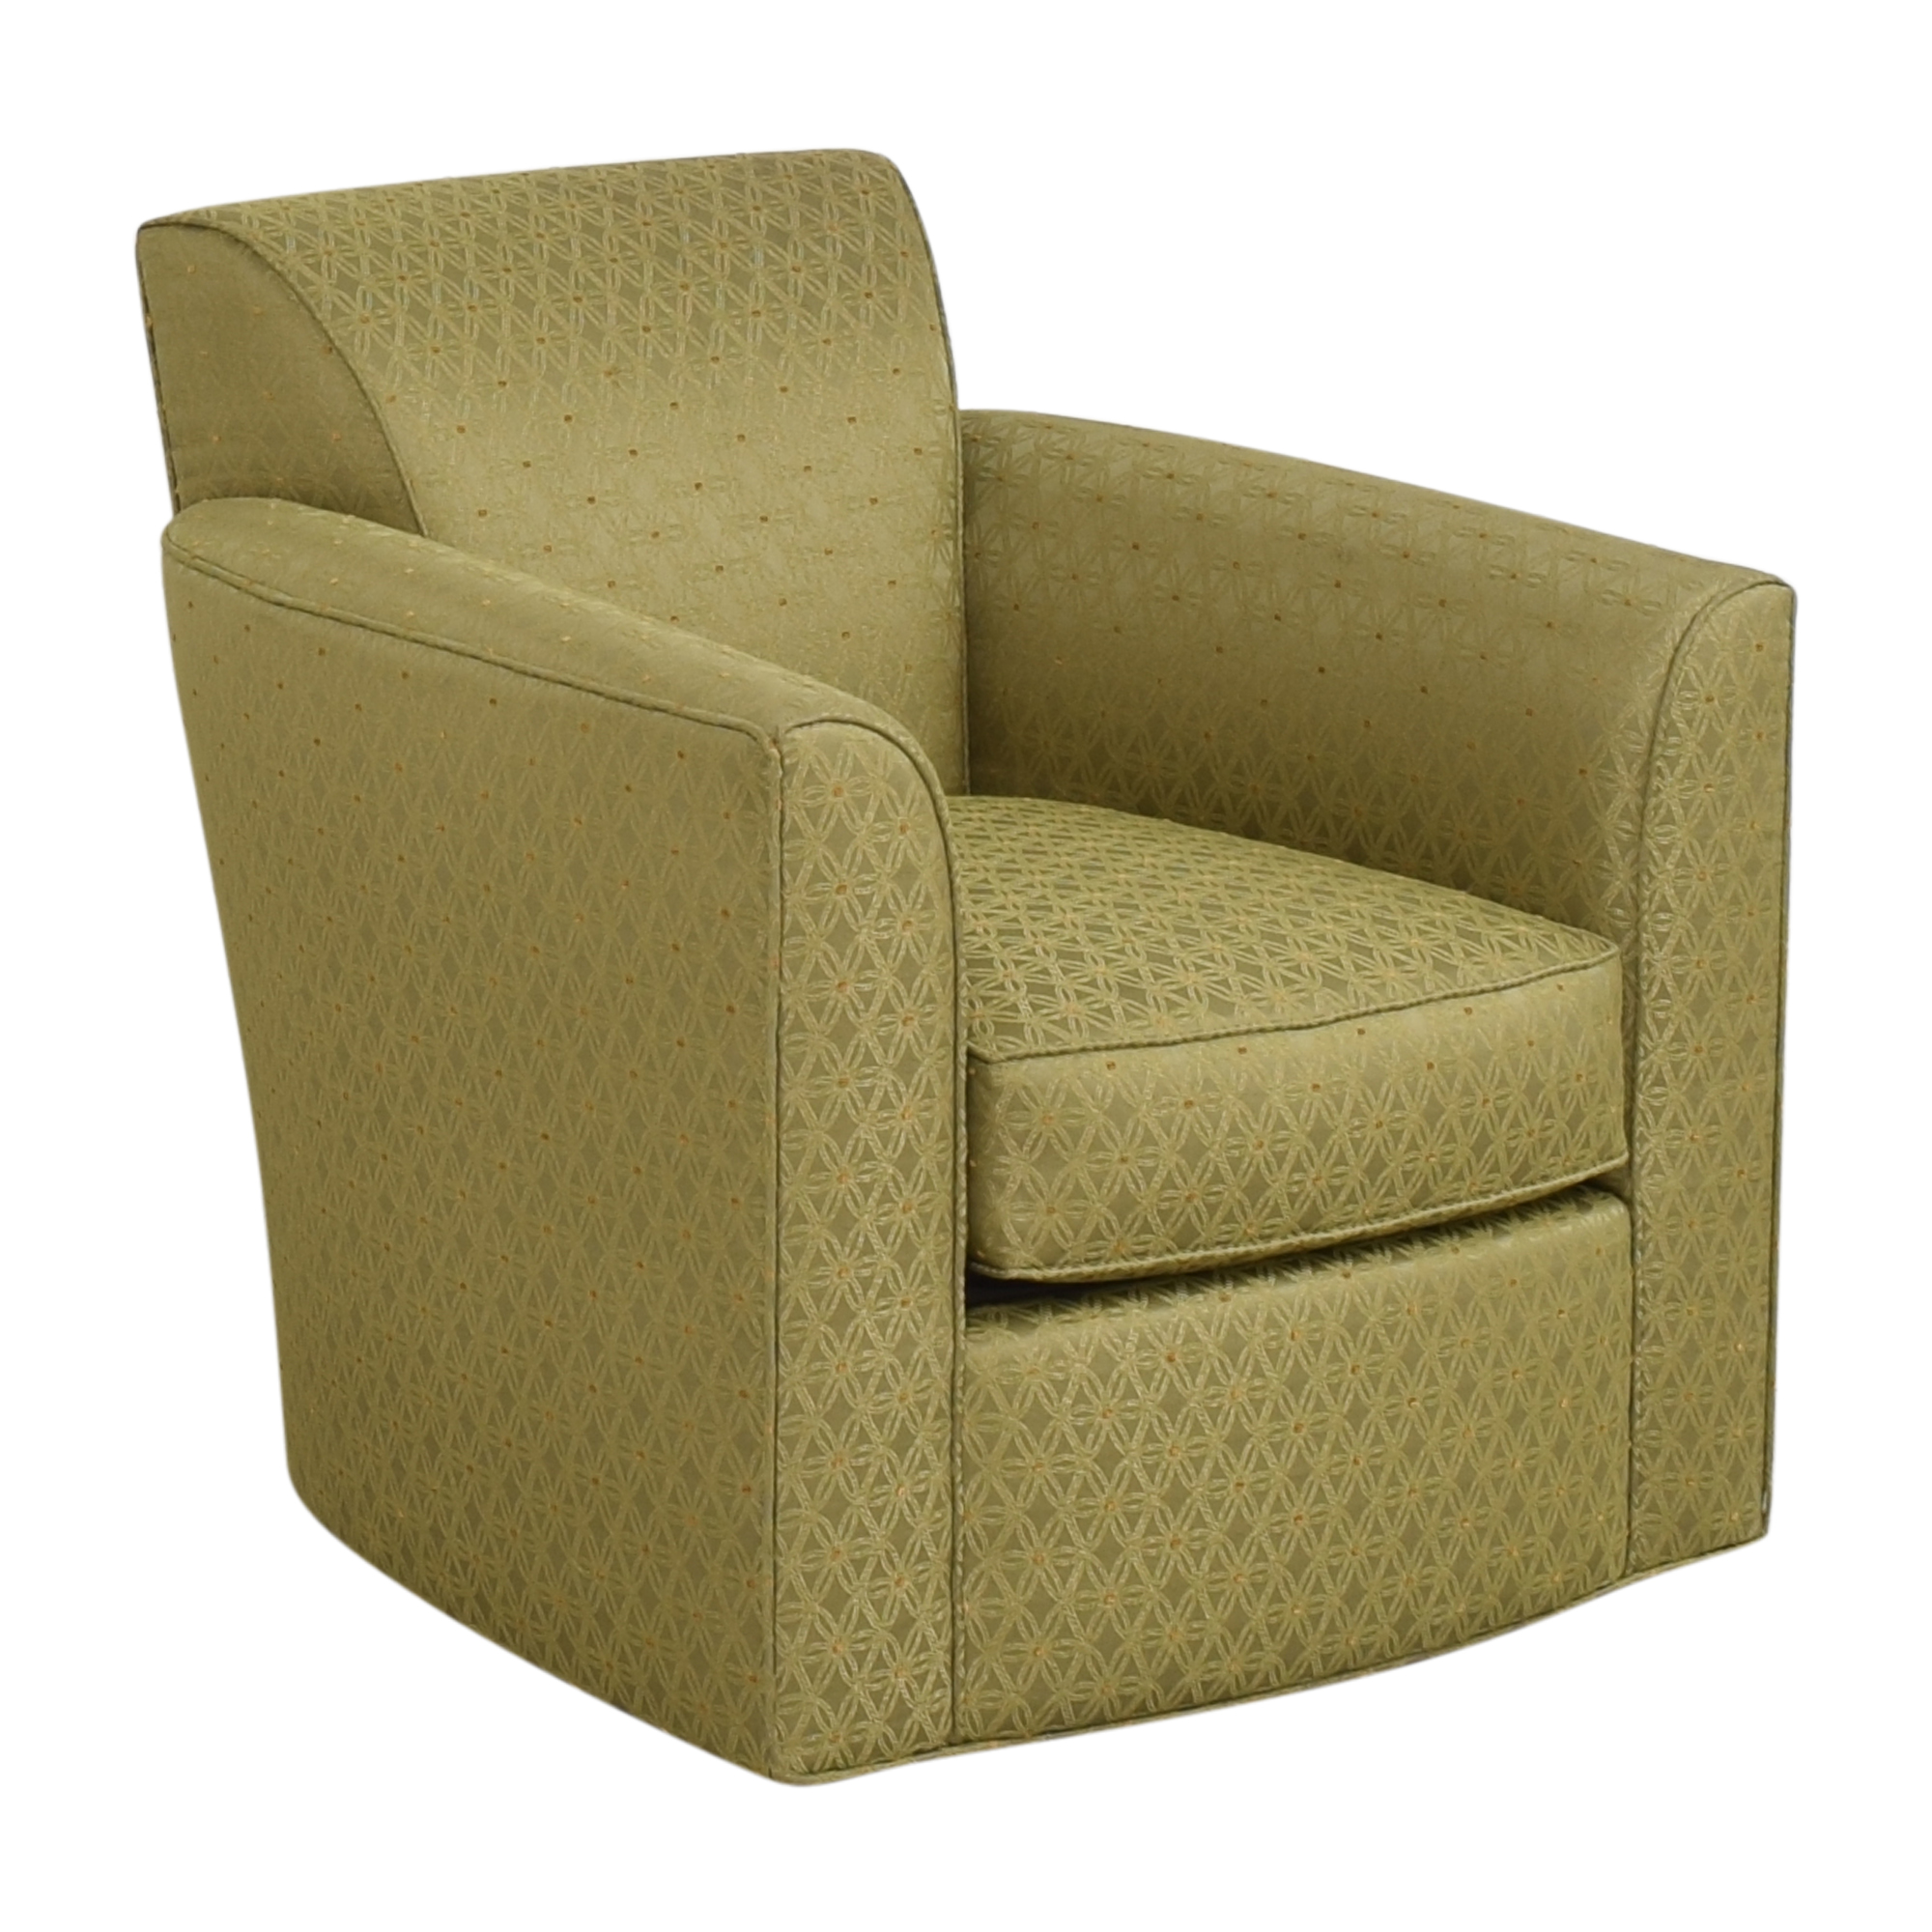 Patterned Accent Armchair sale